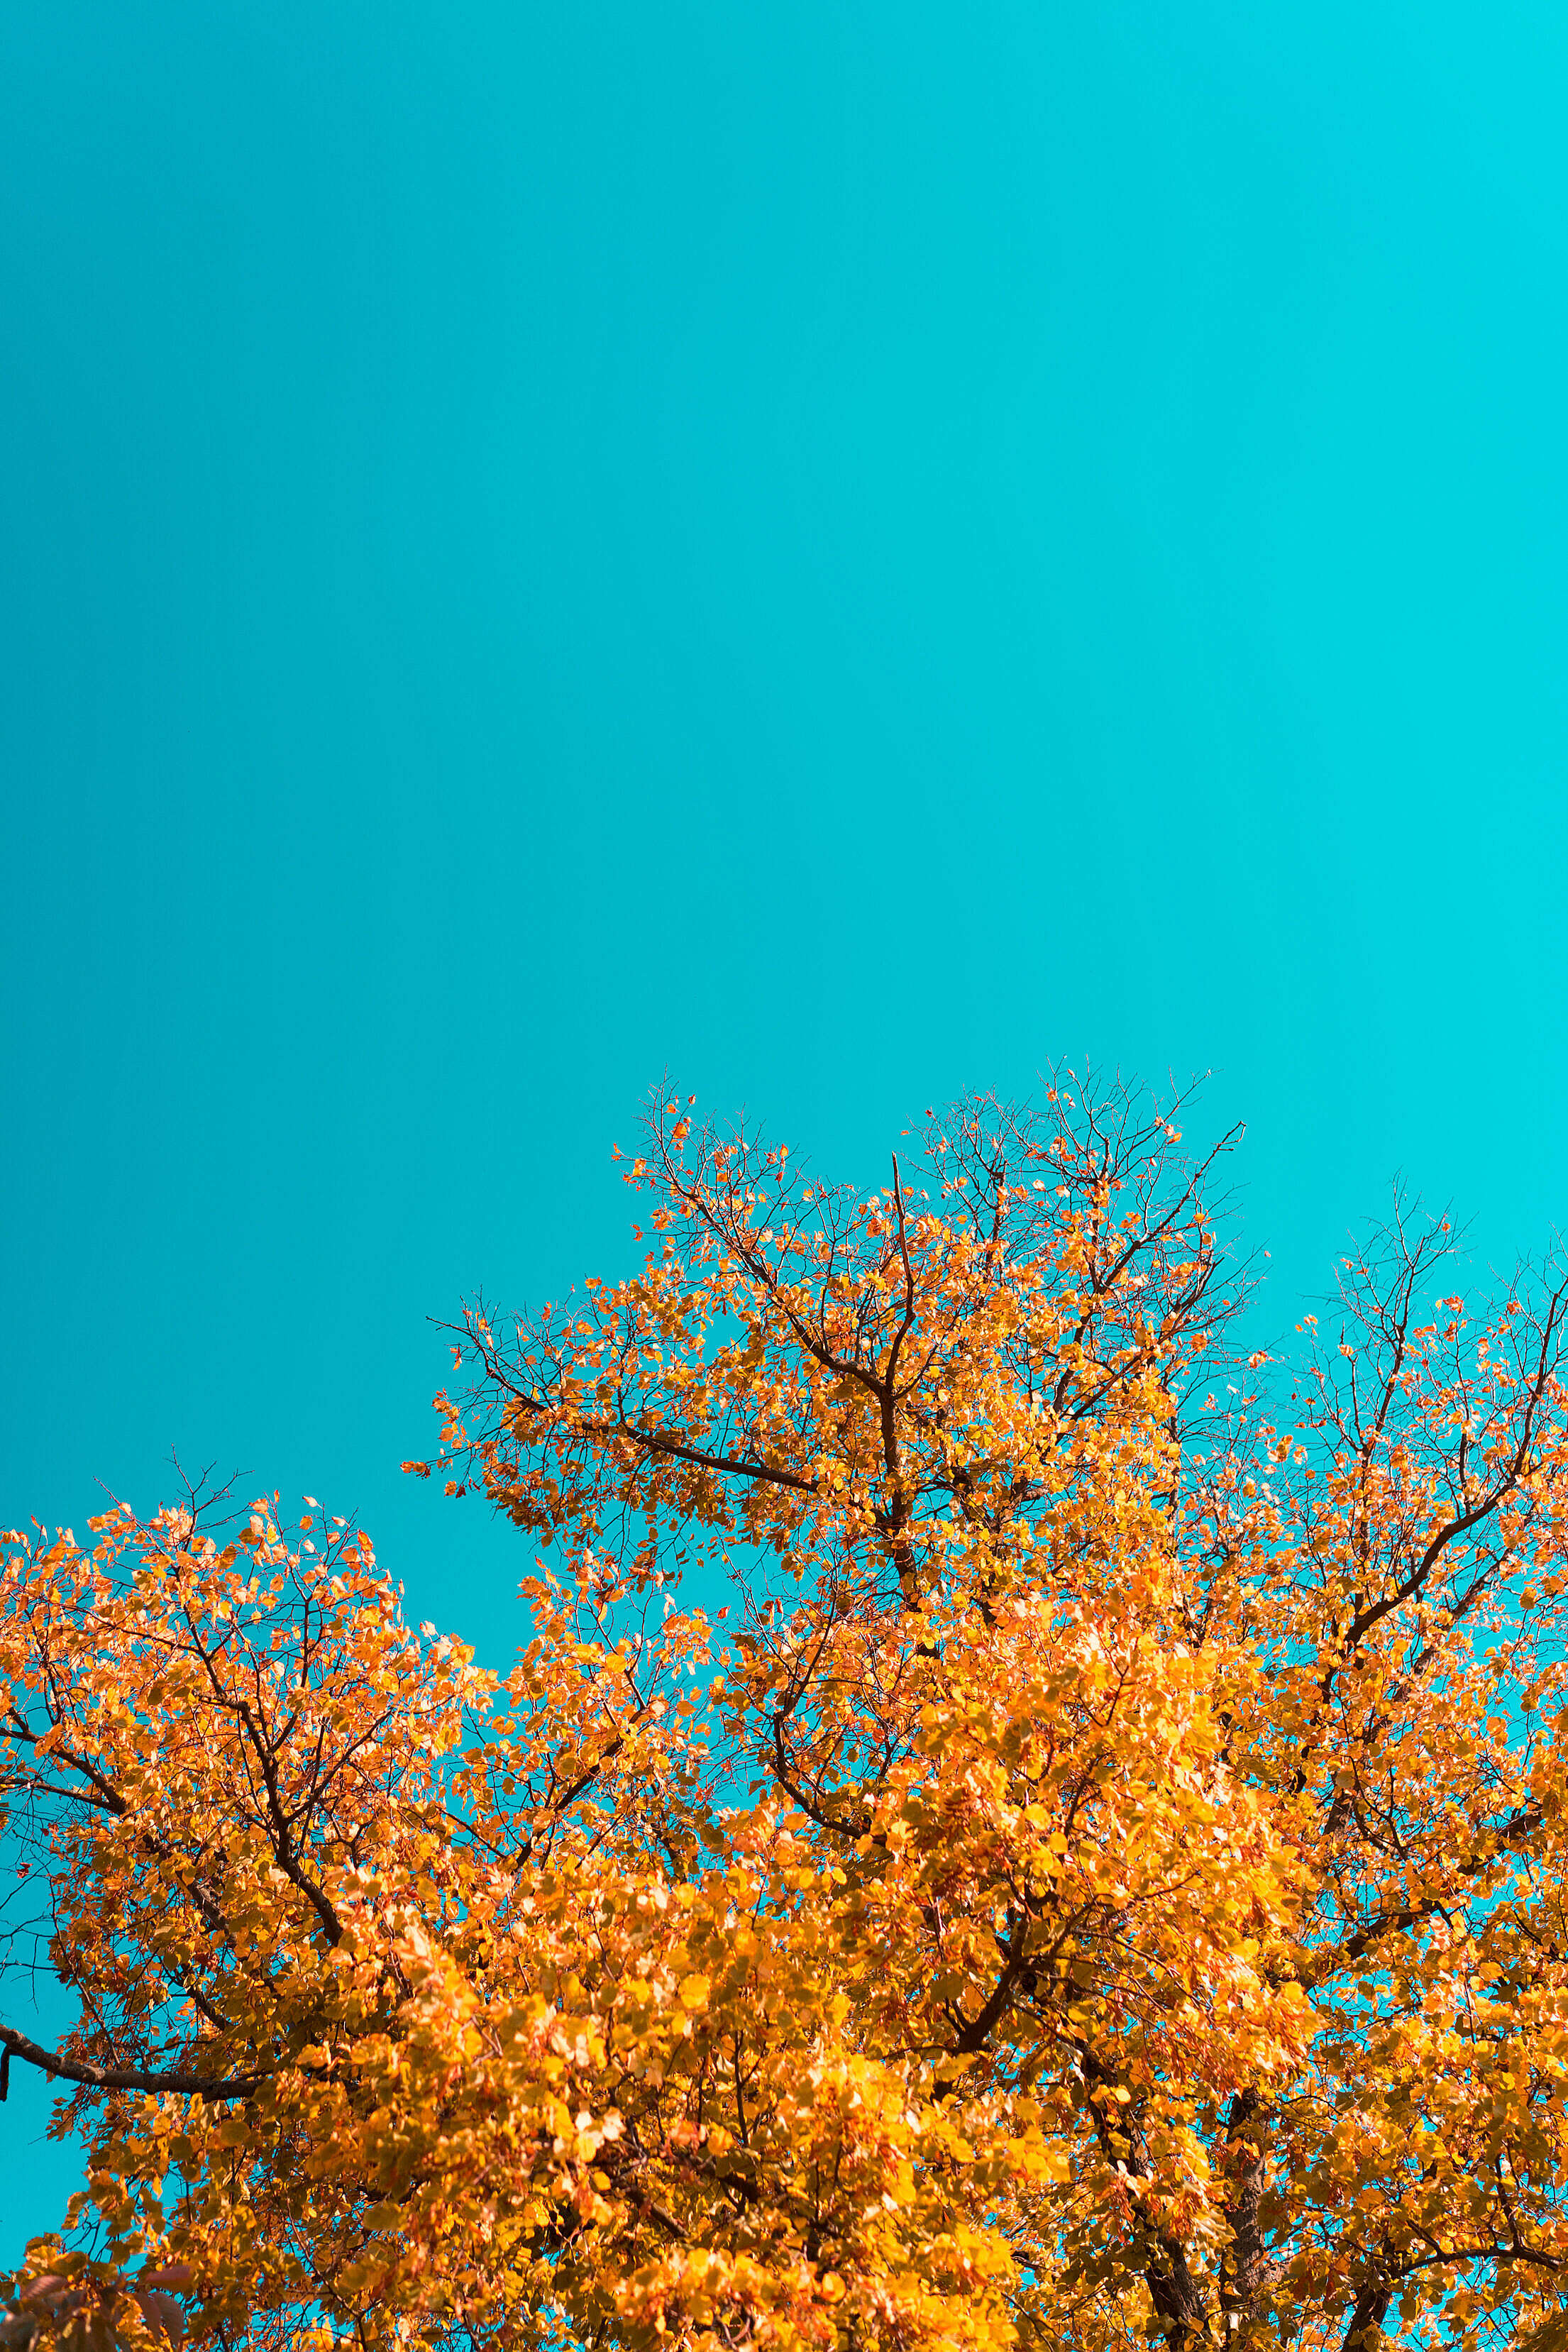 Fall Leaves Against Bright Sky Free Stock Photo